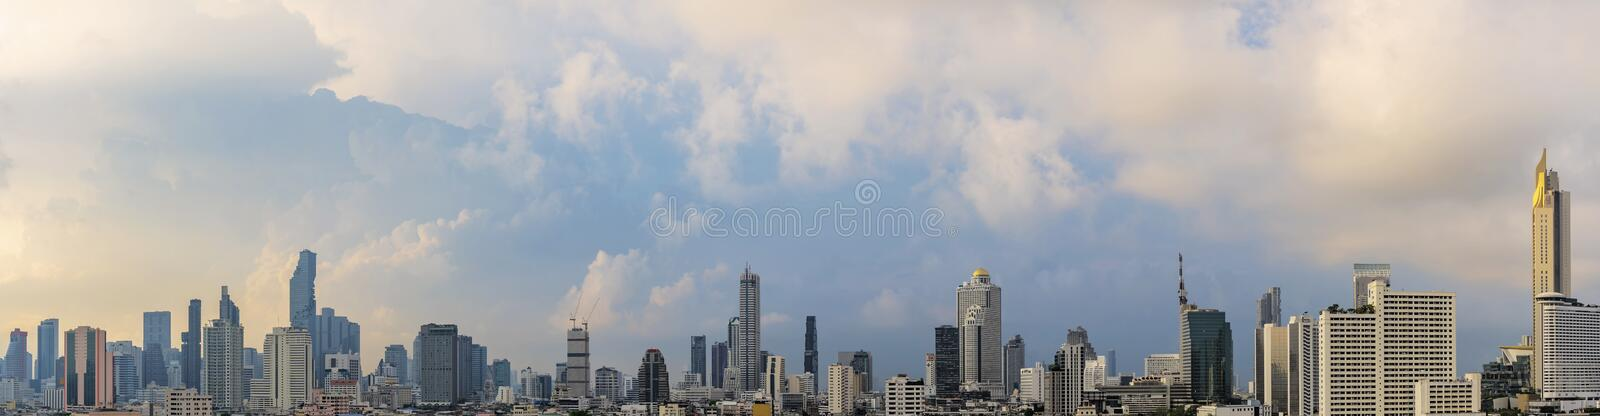 Panorama concept, High-rise and large urban buildings in Bangkok stock images